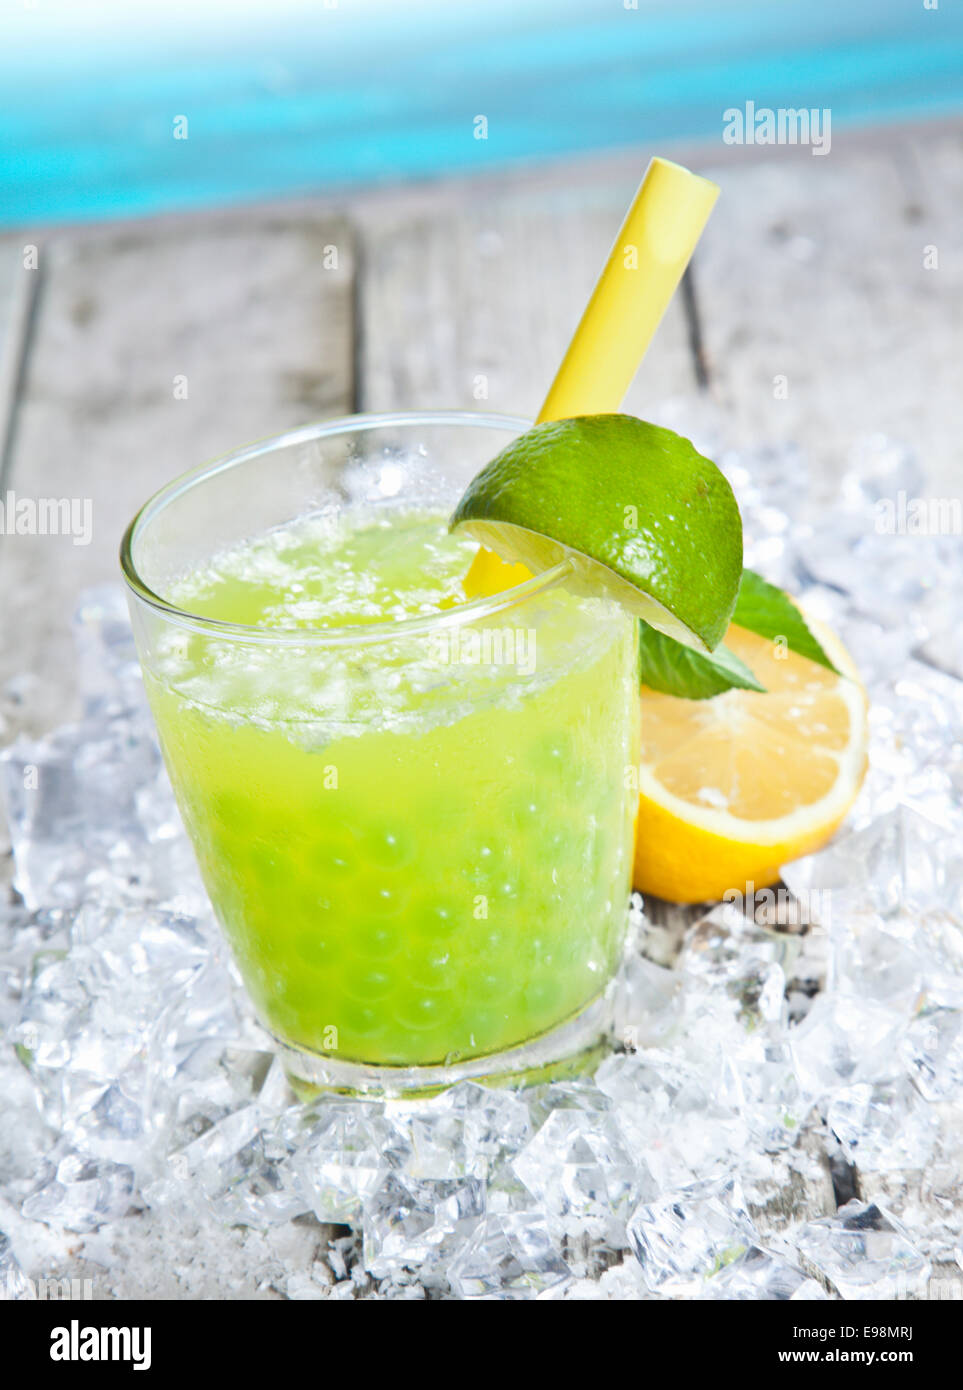 Glass of tangy refreshing lime boba tea cocktail standing on a bed of crushed ice on a wooden deck alongside blue - Stock Image